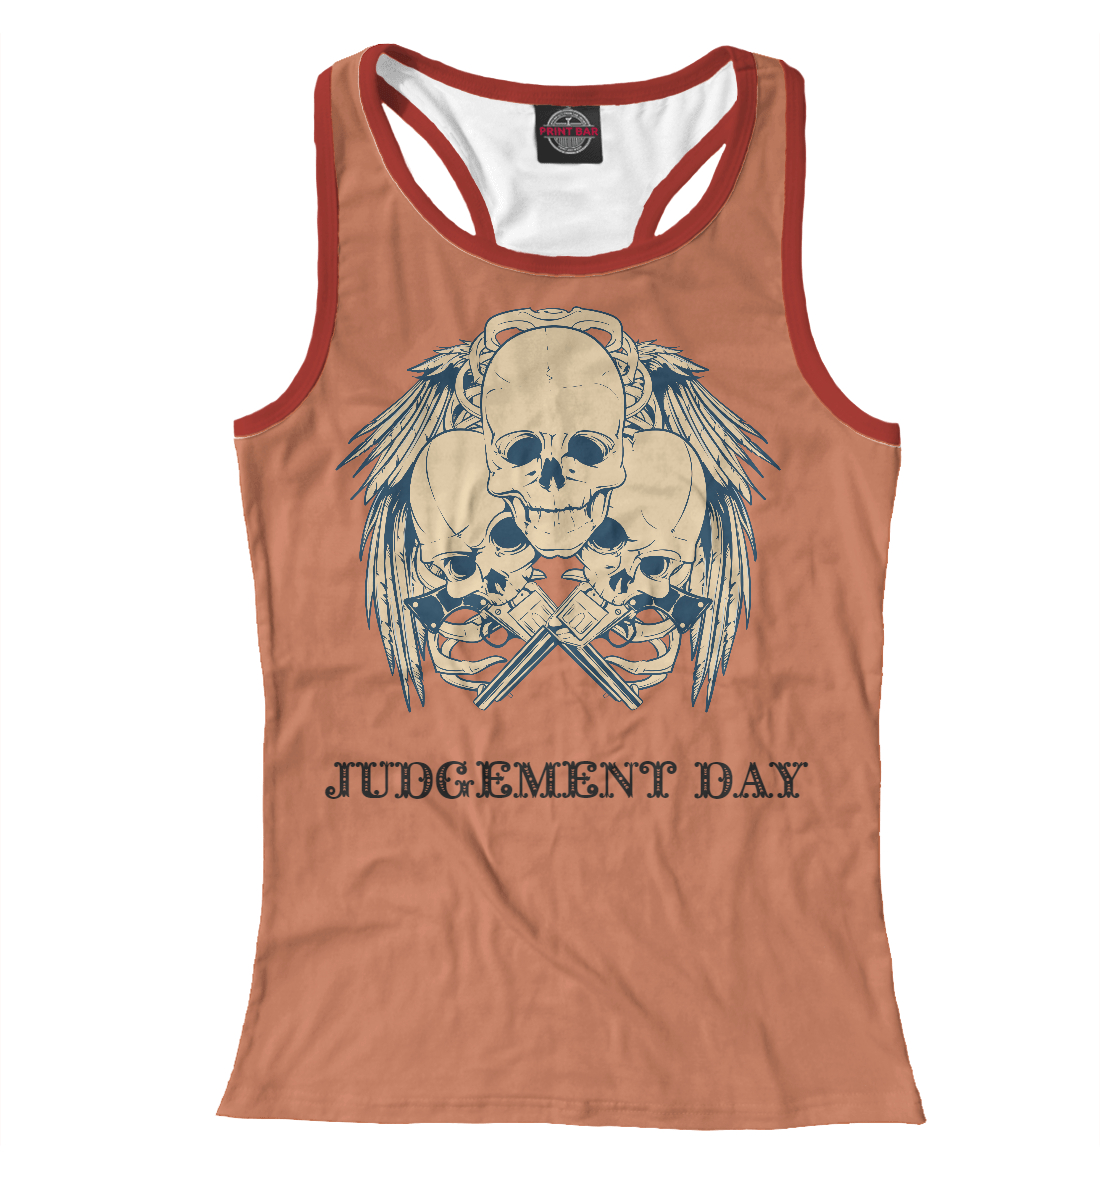 Купить Judgement Day, Printbar, Майки борцовки, SKU-813070-mayb-1